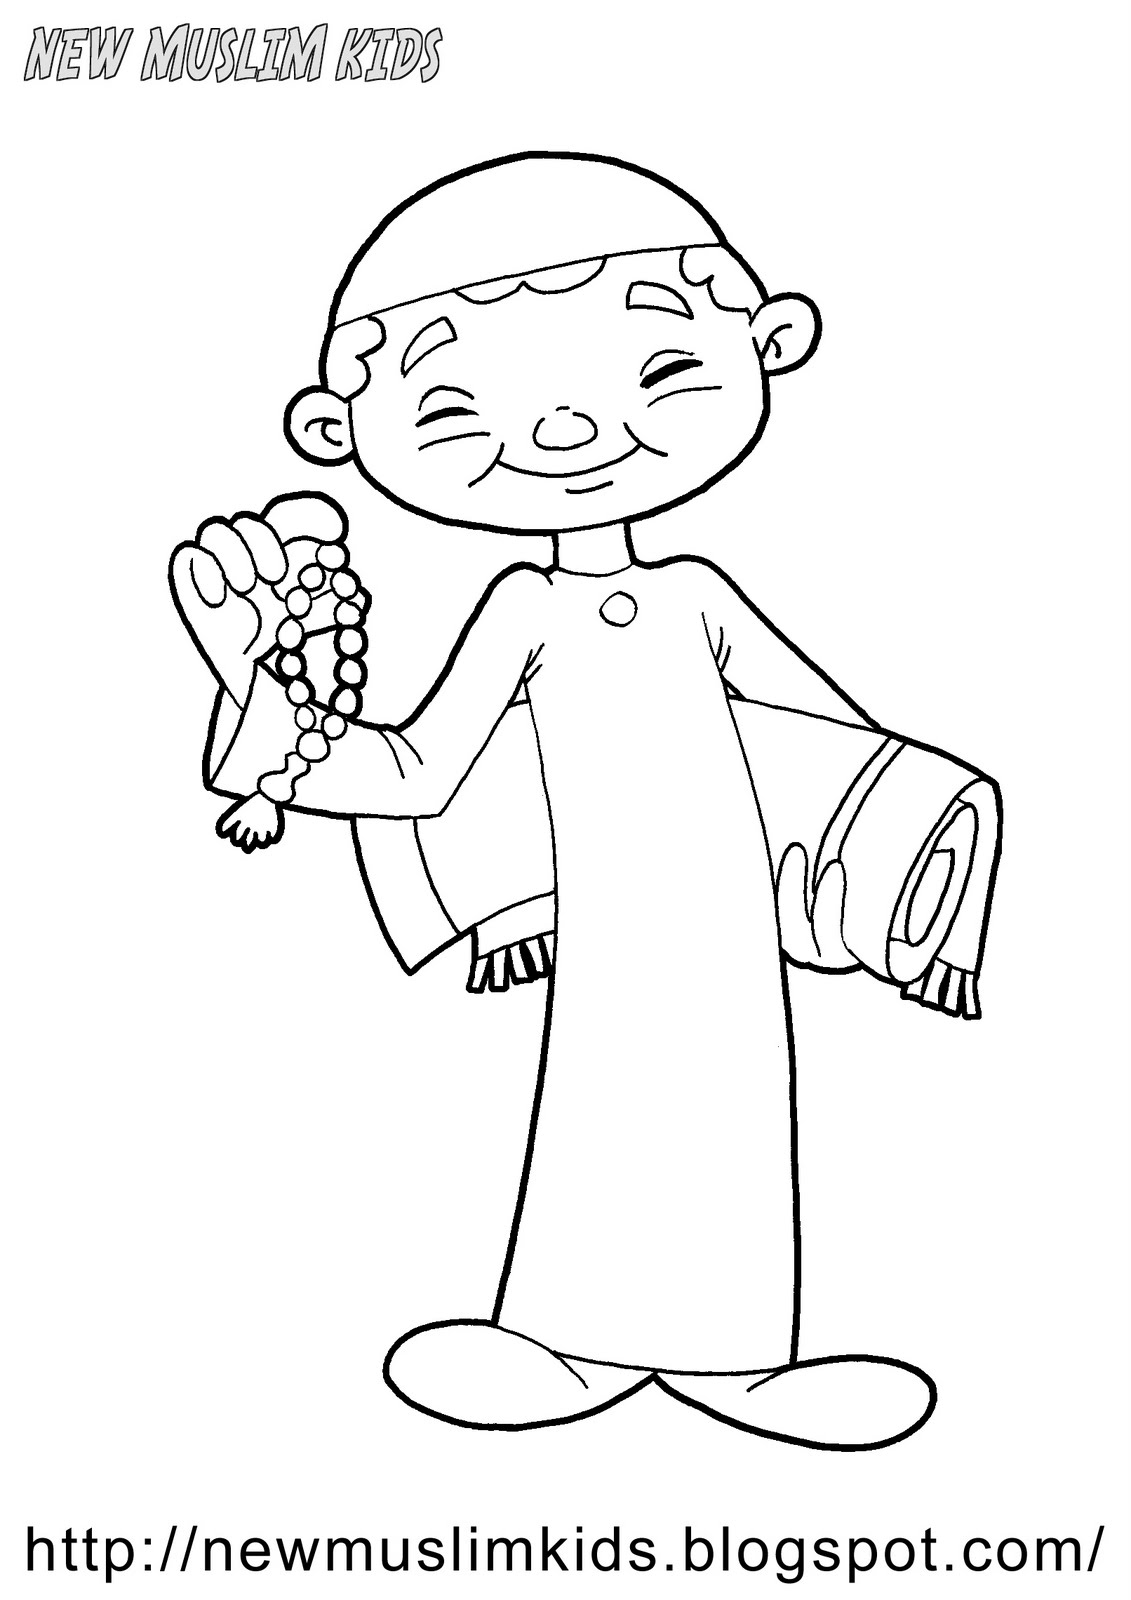 hajj ihram coloring pages - photo #43